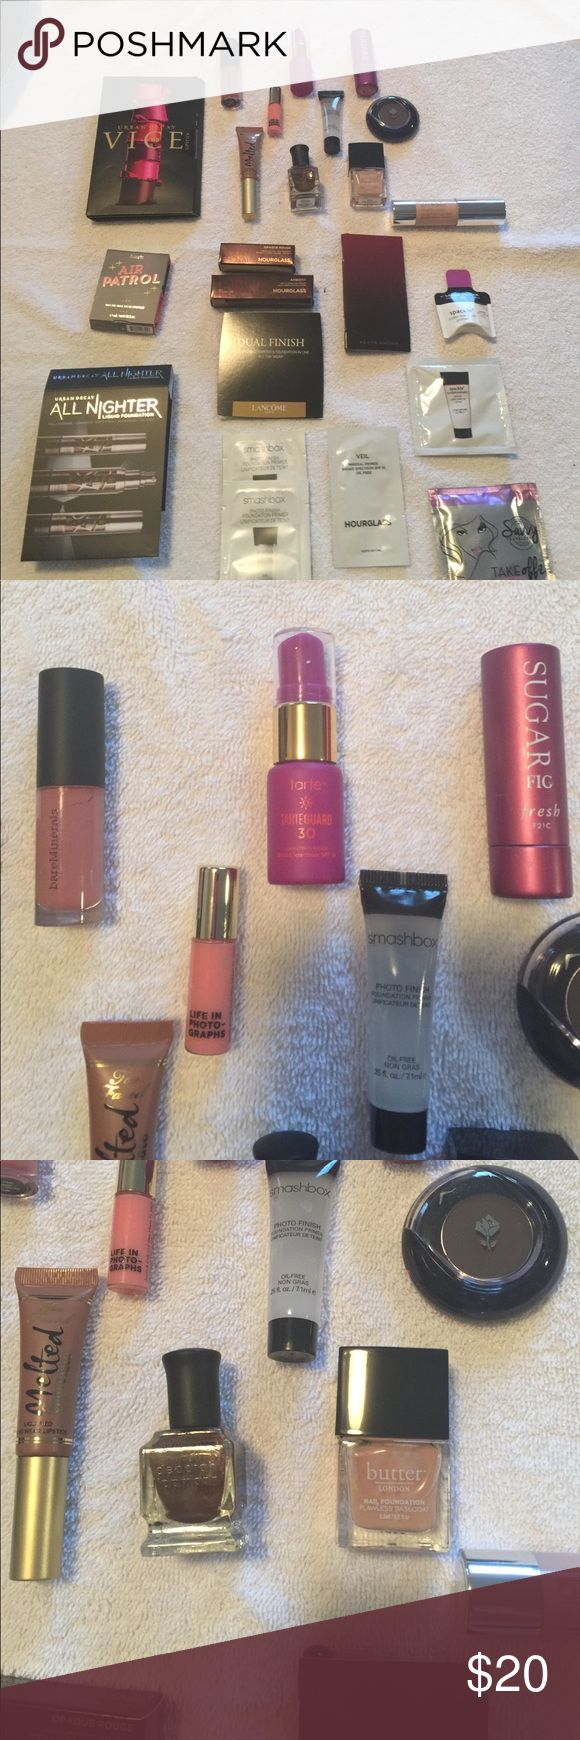 Prestige cosmetic samples Urban decay benefit Clinique Lancôme sugar bare essentials too faced butter Deborah Lippmann laura Geller and others. Lip gloss highlighters primers eye shadow etc. Makeup